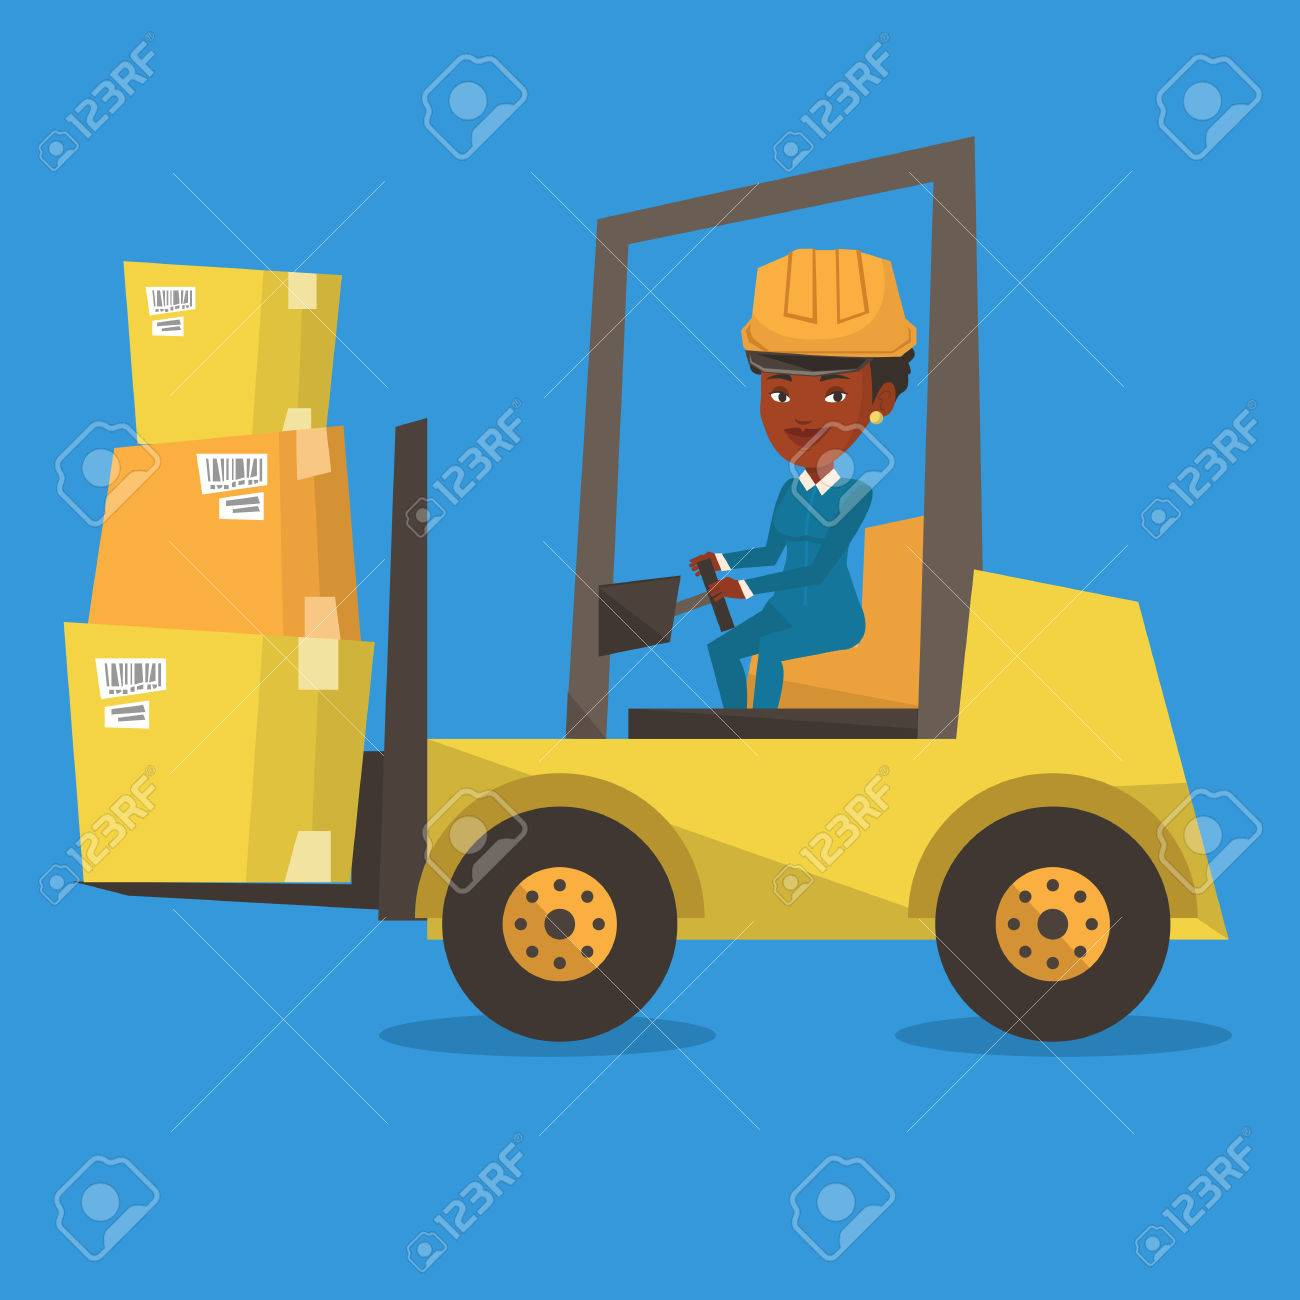 Warehouse driver clipart jpg library Forklift clipart warehouse worker - 112 transparent clip ... jpg library